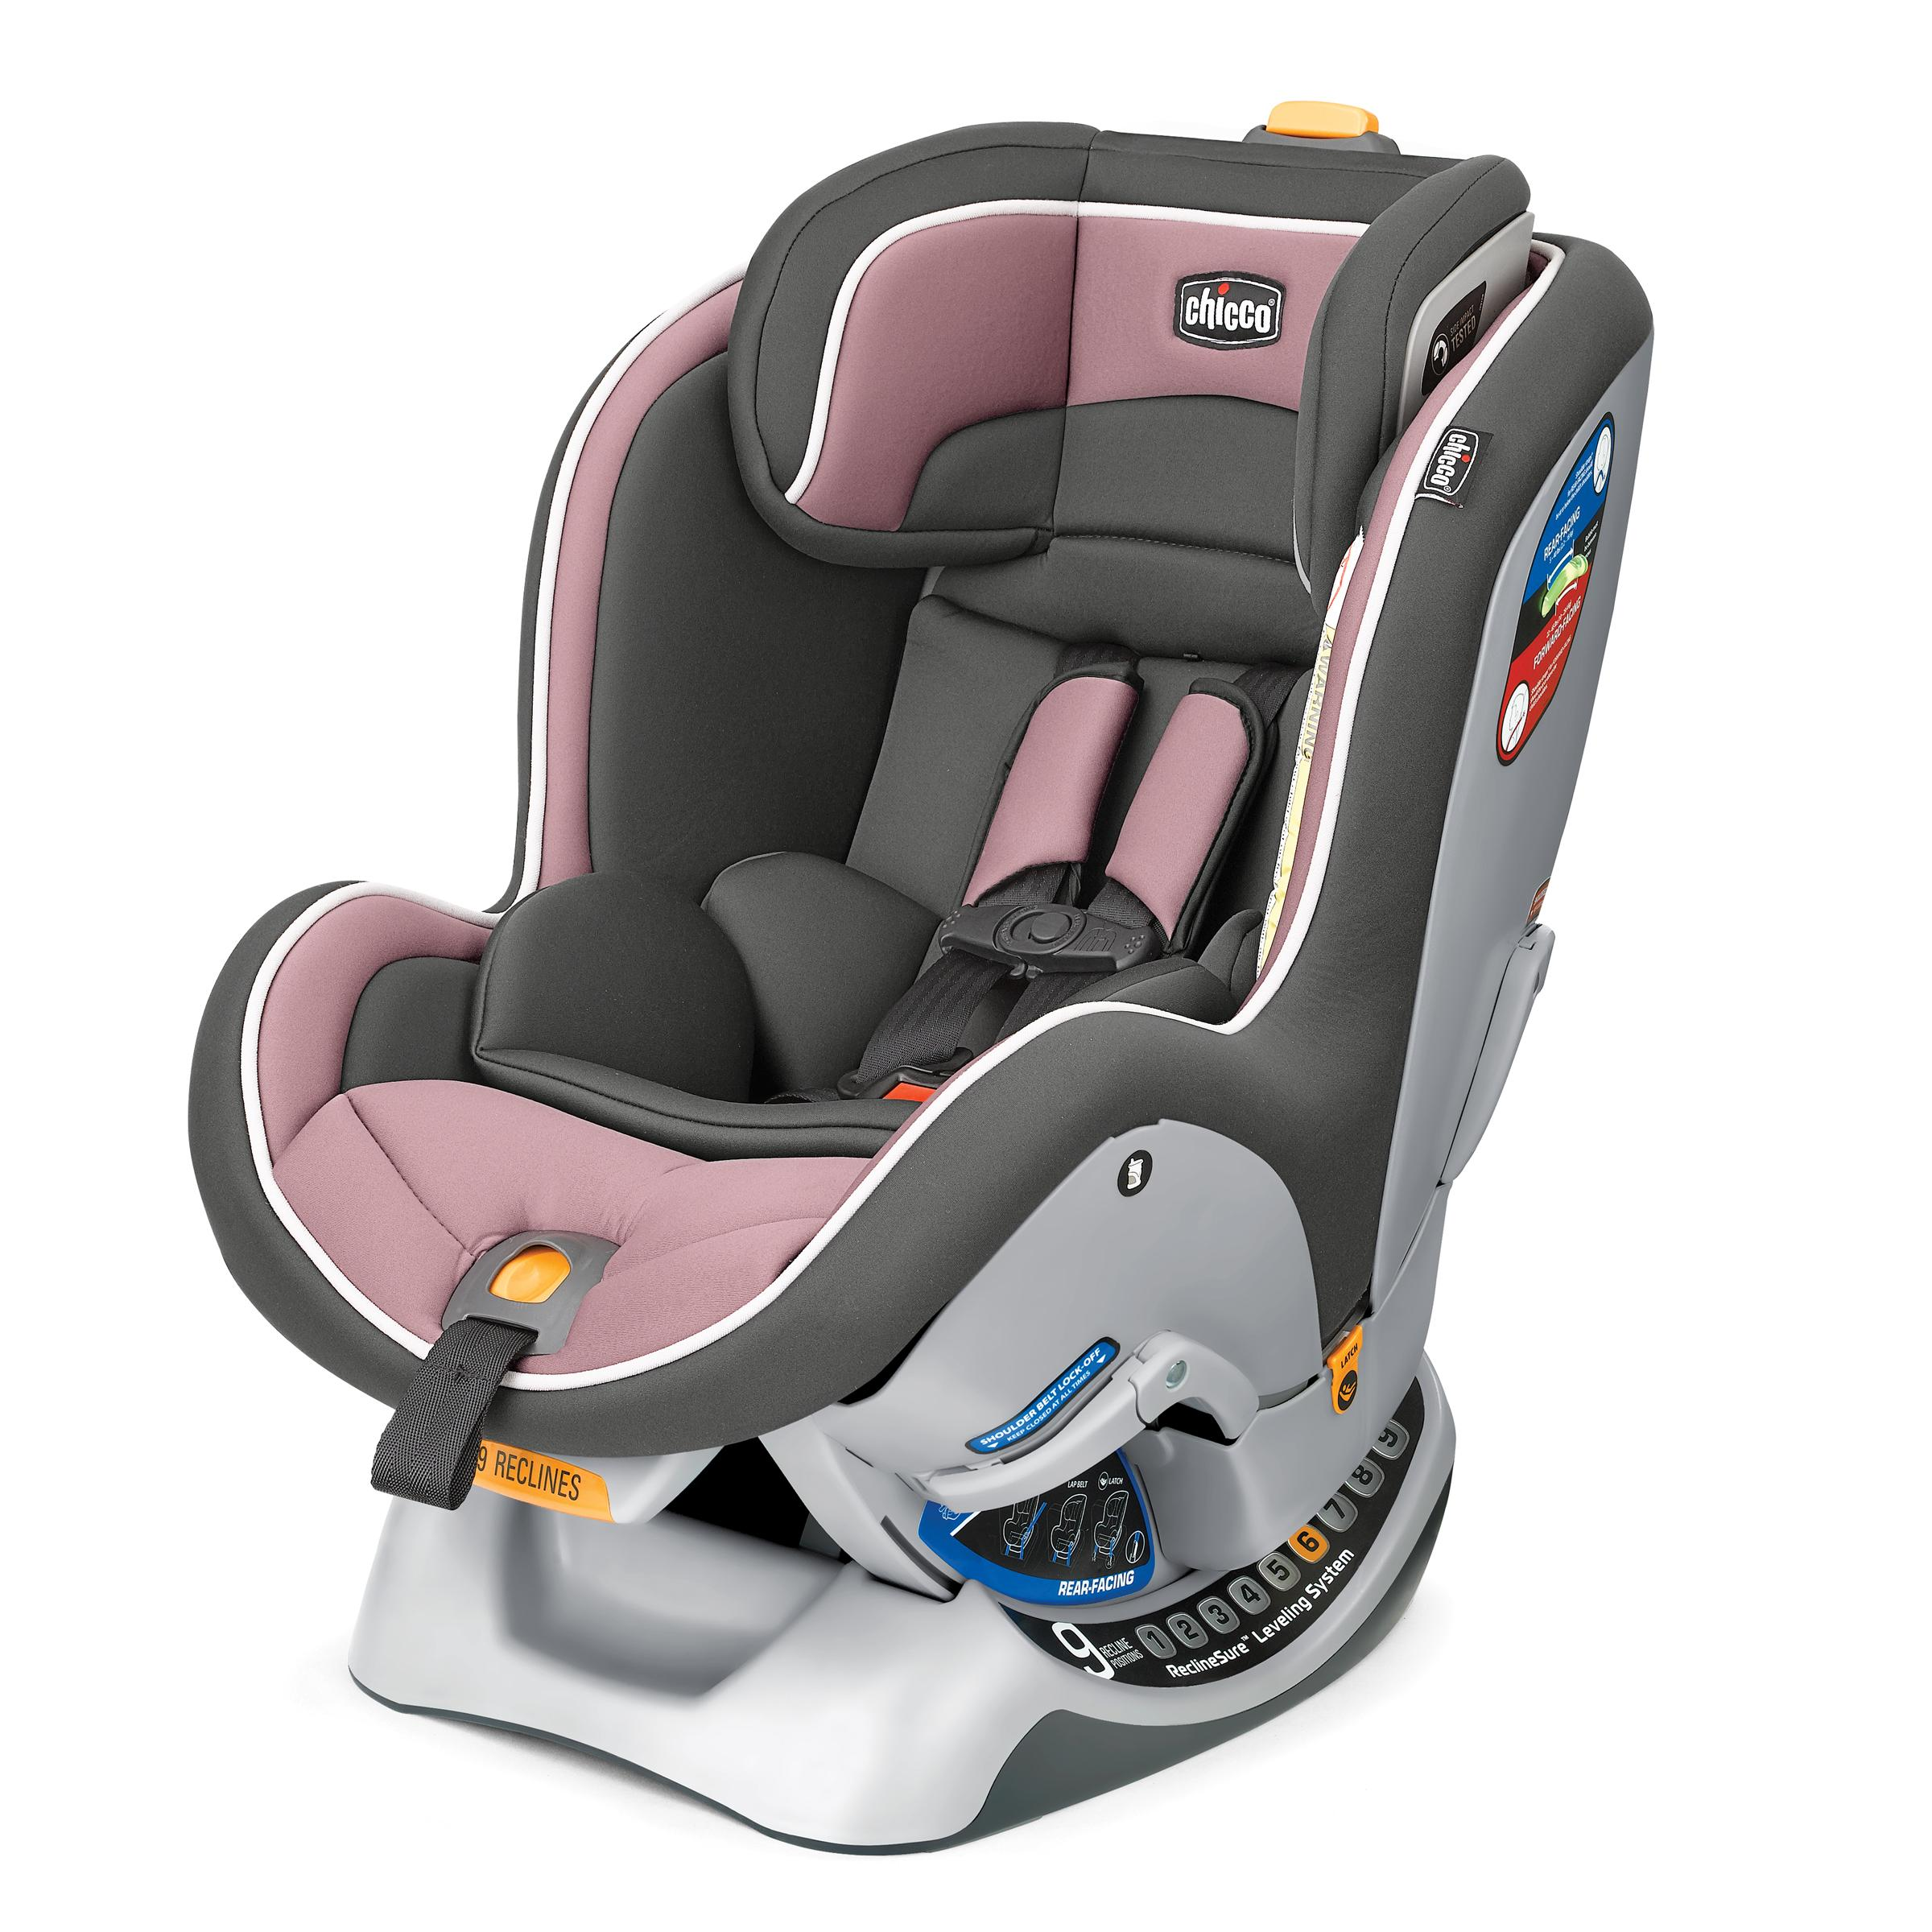 chicco nextfit convertible car seat rose discontinued by manufacturer. Black Bedroom Furniture Sets. Home Design Ideas